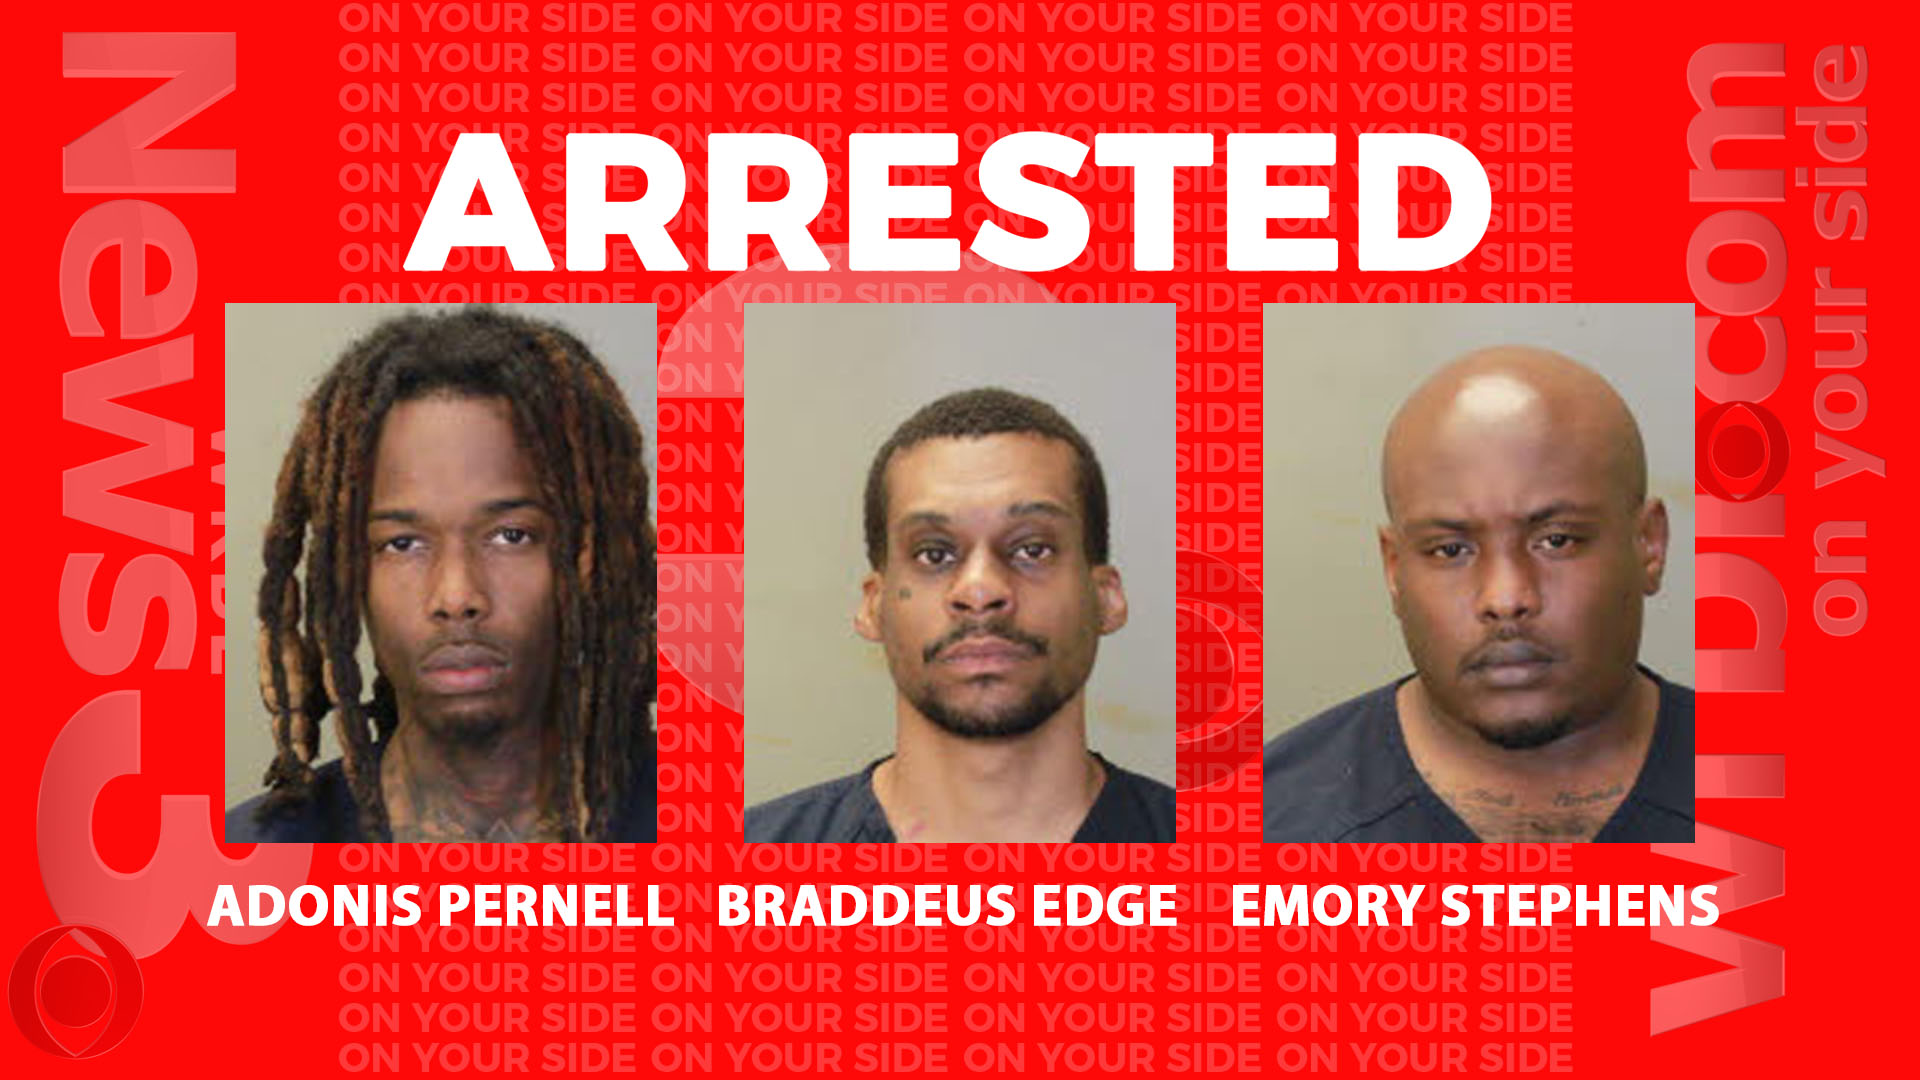 Columbus man arrested in Wednesday drug bust also faces gang